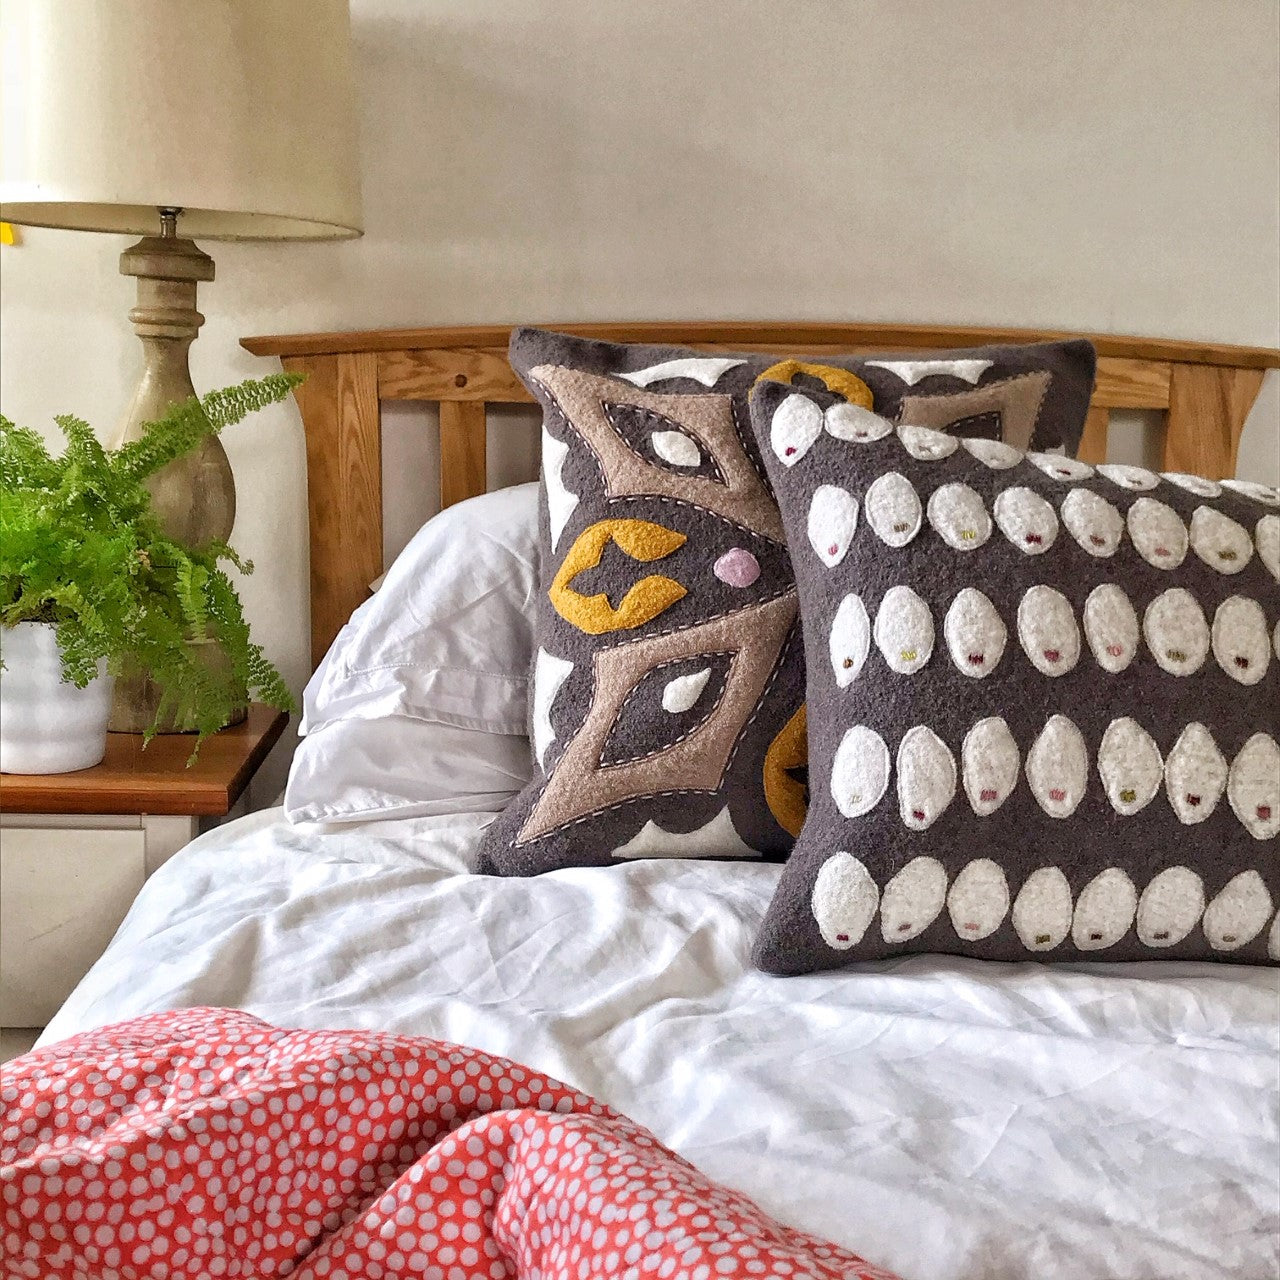 Pebble - Wool Appliqué Cushion in Taupe and Off-white with embroidery detail